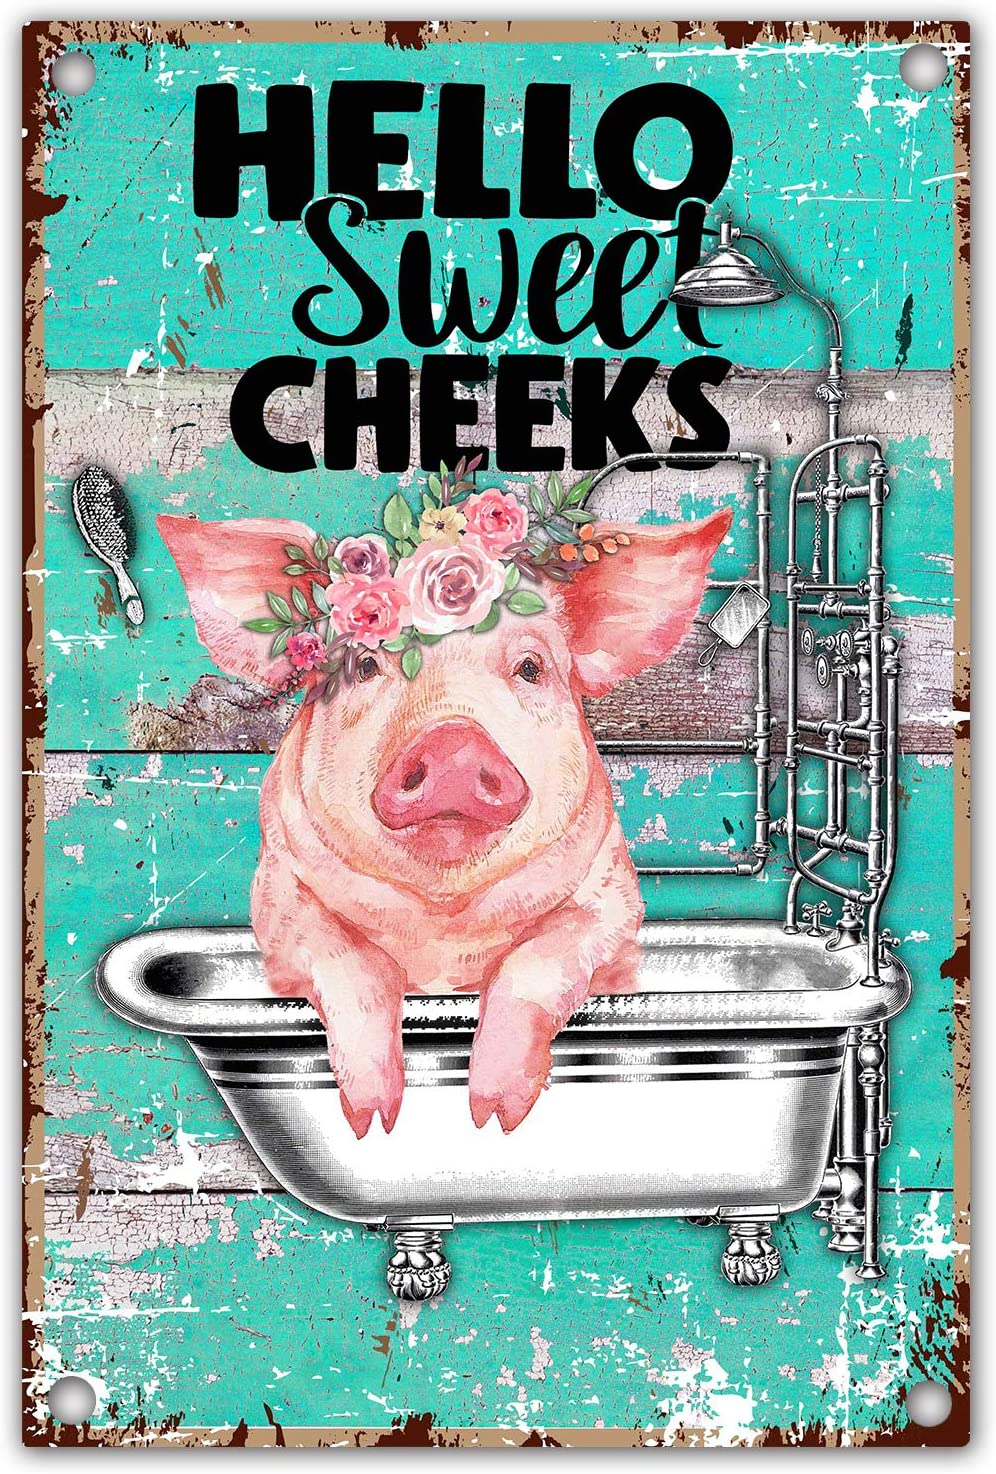 vizuzi Funny Bathroom Quote Metal Tin Sign Wall Decor, Vintage Hello Sweet Cheeks Pig Tin Sign for Office/Home/Classroom Bathroom Decor Gifts - Best Farmhouse Decor Gift Ideas for Friends